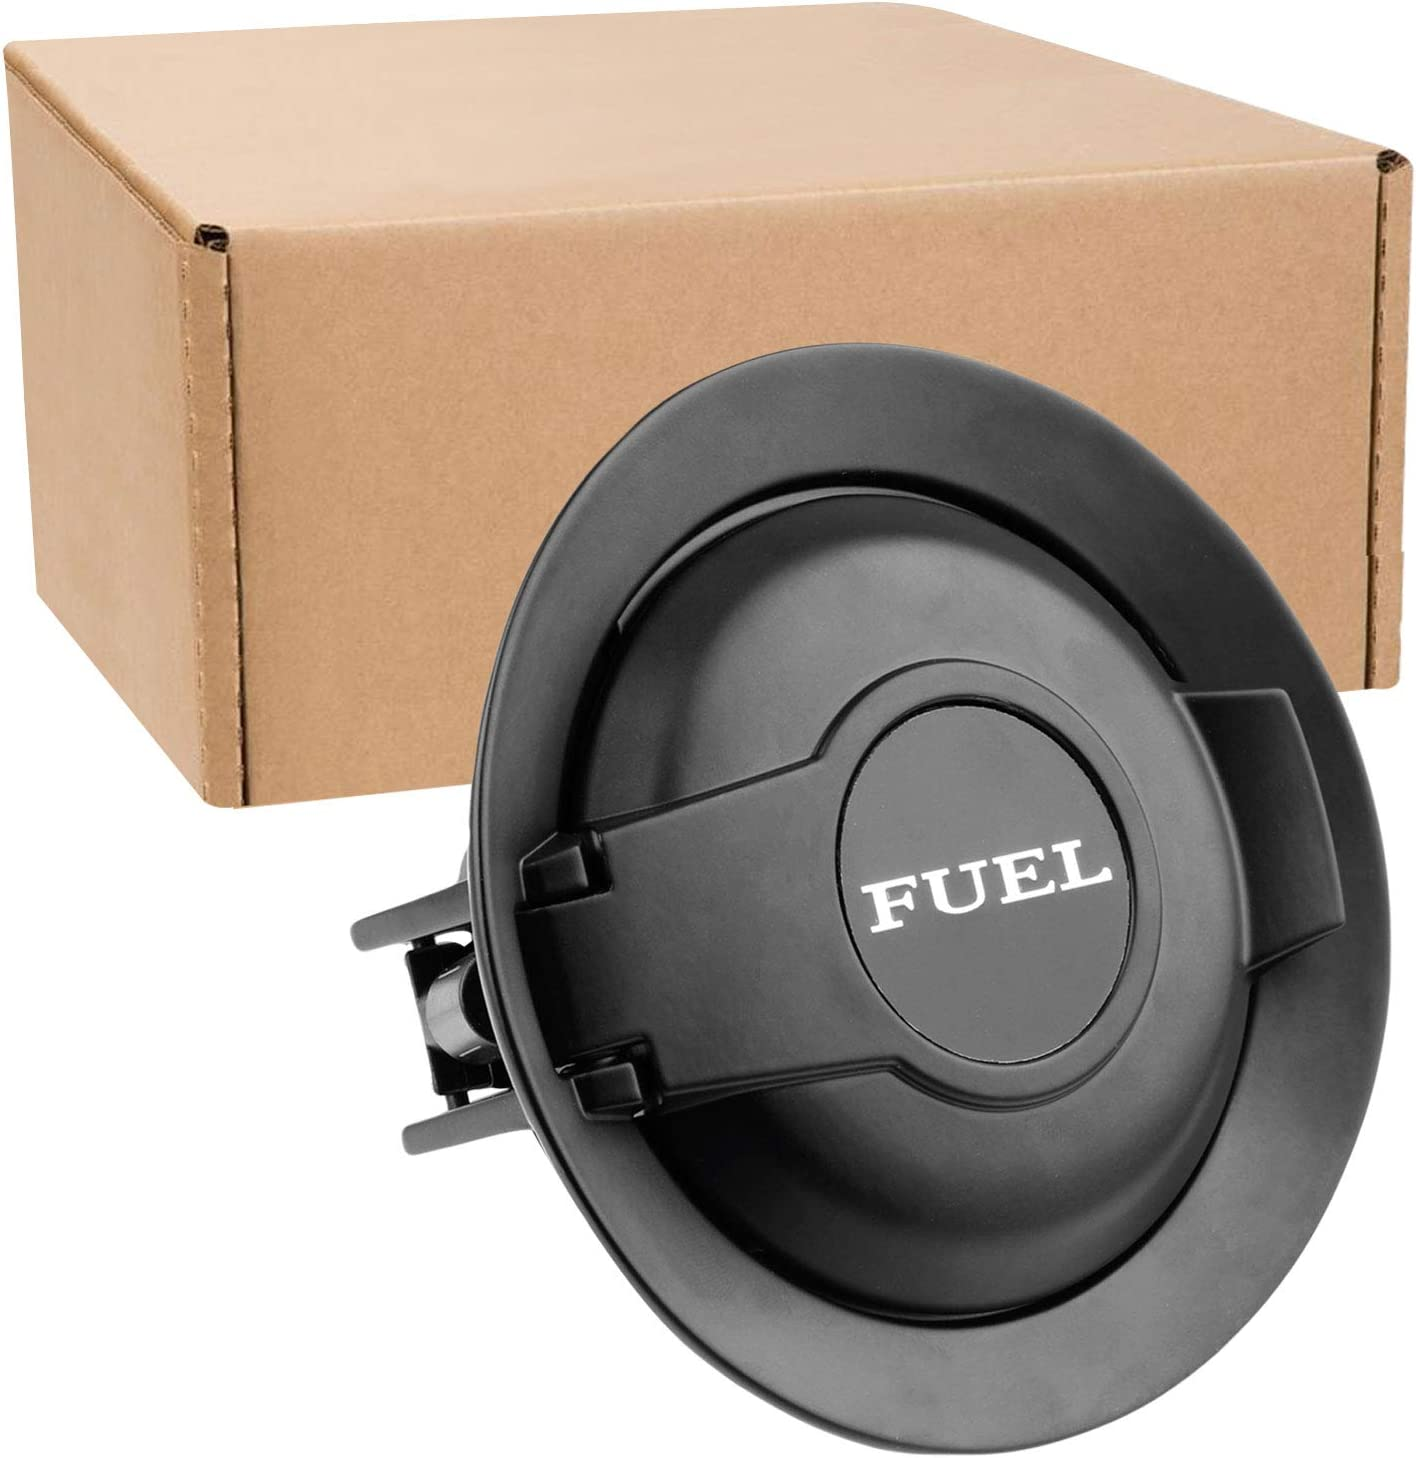 68250120AA Vapor Edition Fuel Filler Door Replace for Mopar Fit for 2008 2009 2010 2011 2012 2013 2014 2015 2016 2017 2018 2019 Dodge Challenger Matte Black